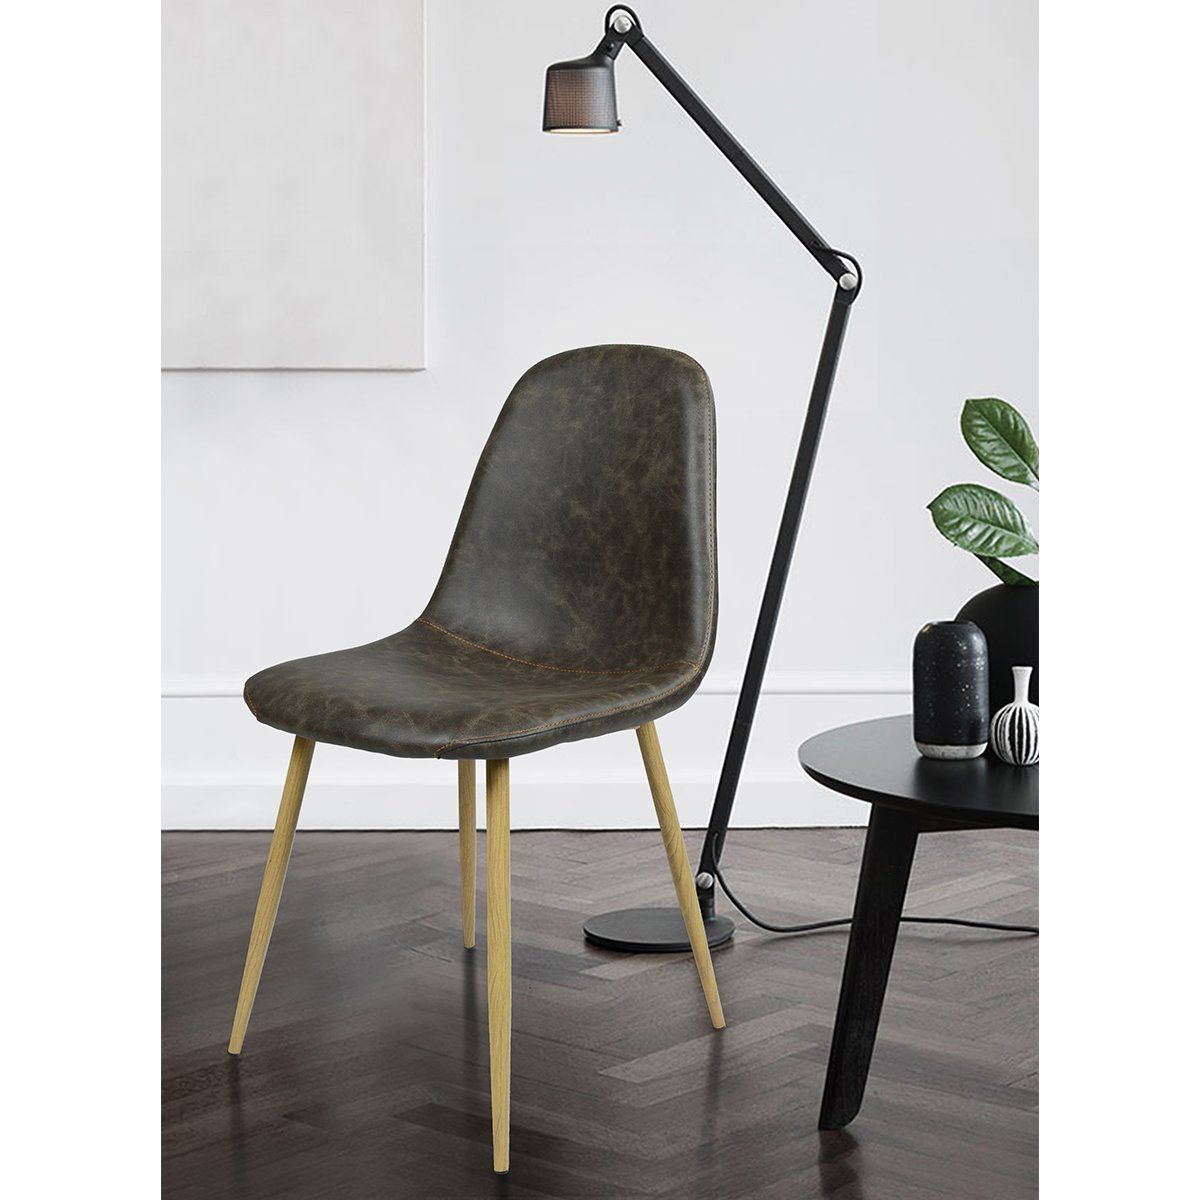 Dining Side Chairs Washable Pu Cushion Seat Metal Legs for